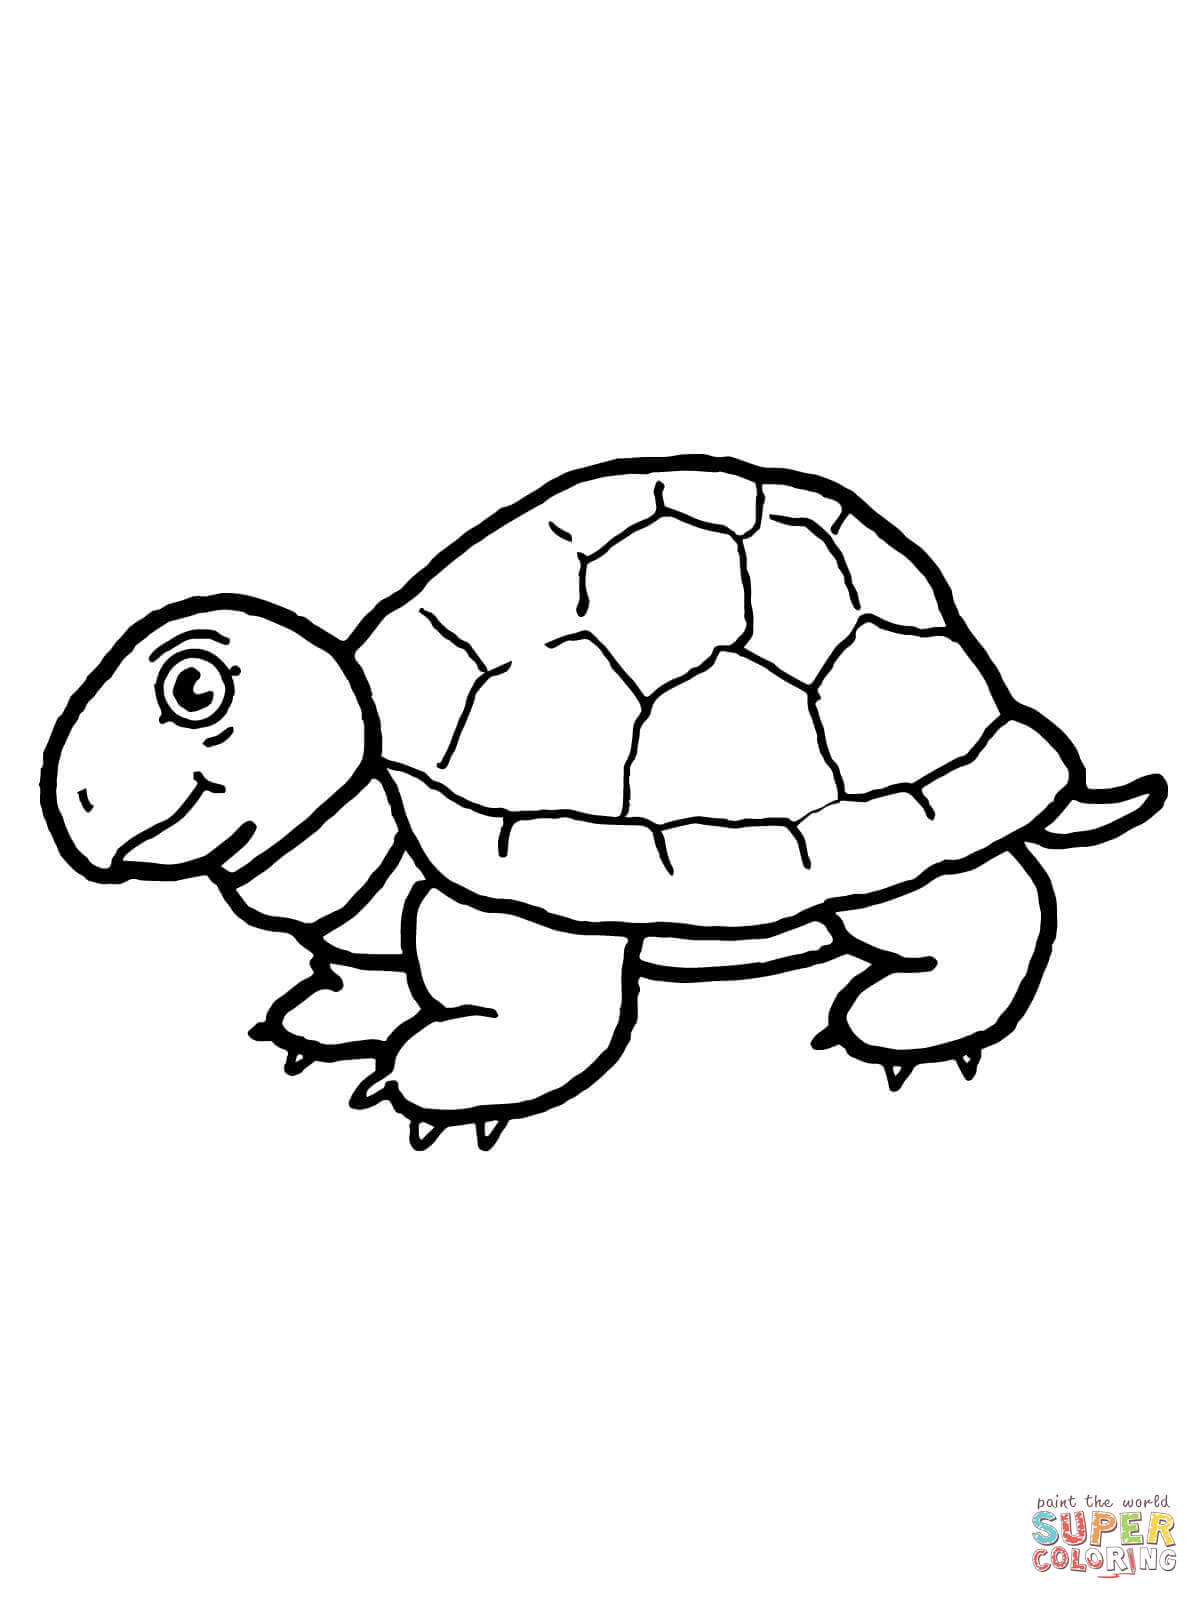 Tortoise clipart coloring page #2